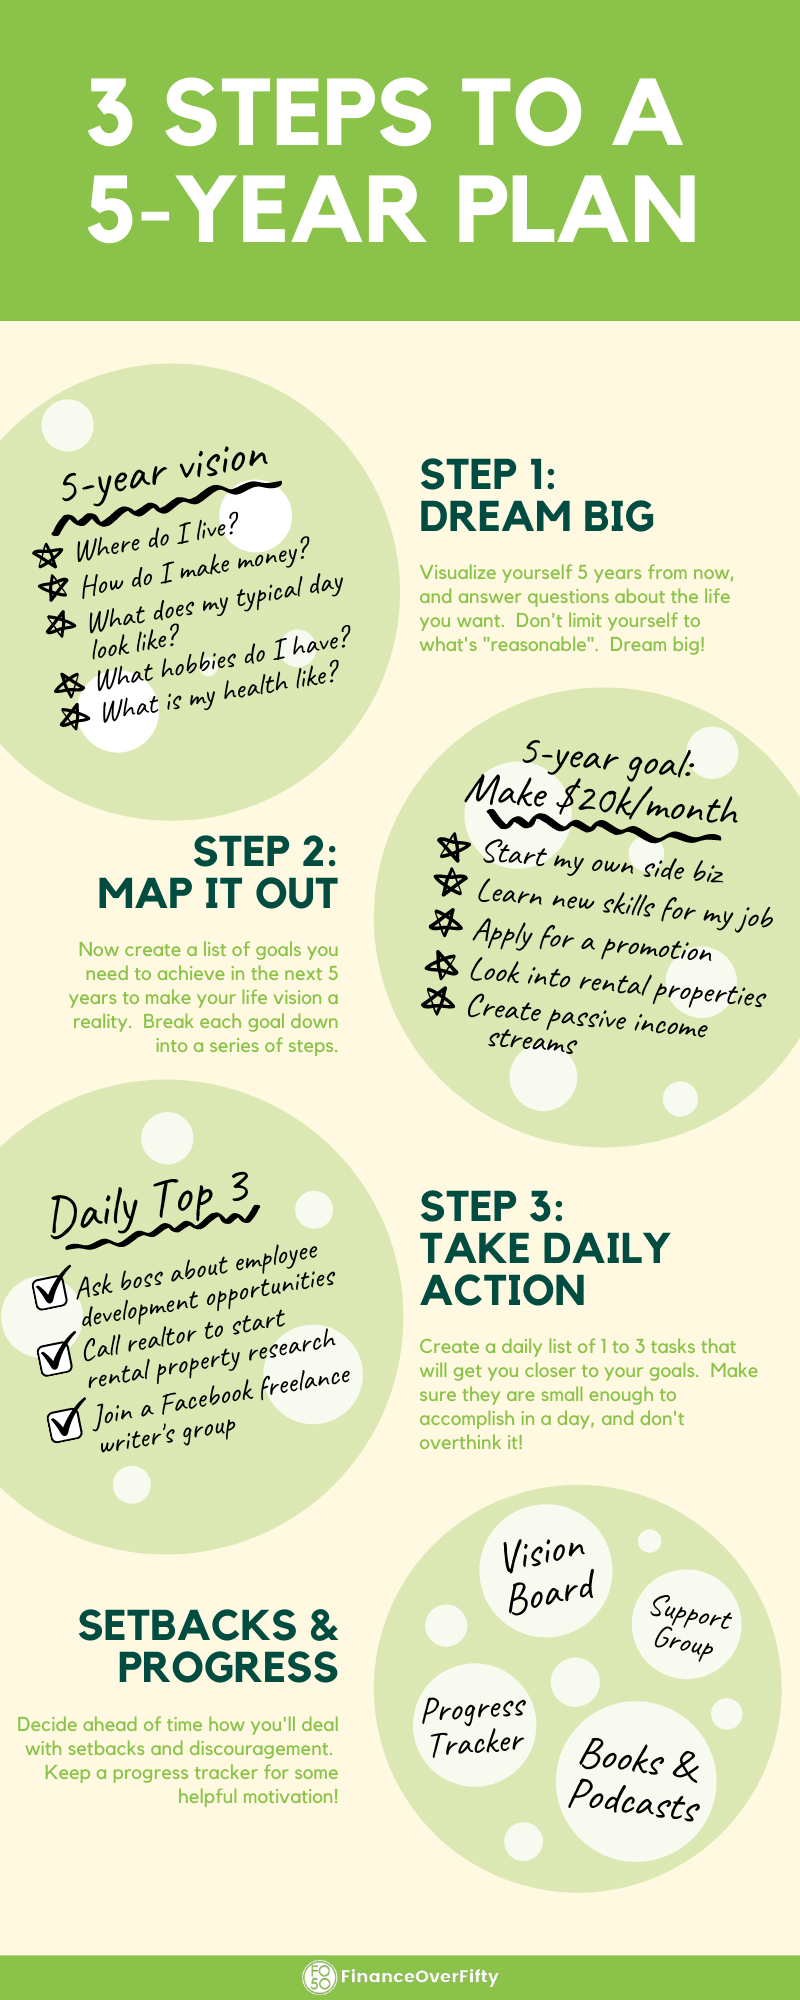 3 Steps to a 5 Year Plan Infographic